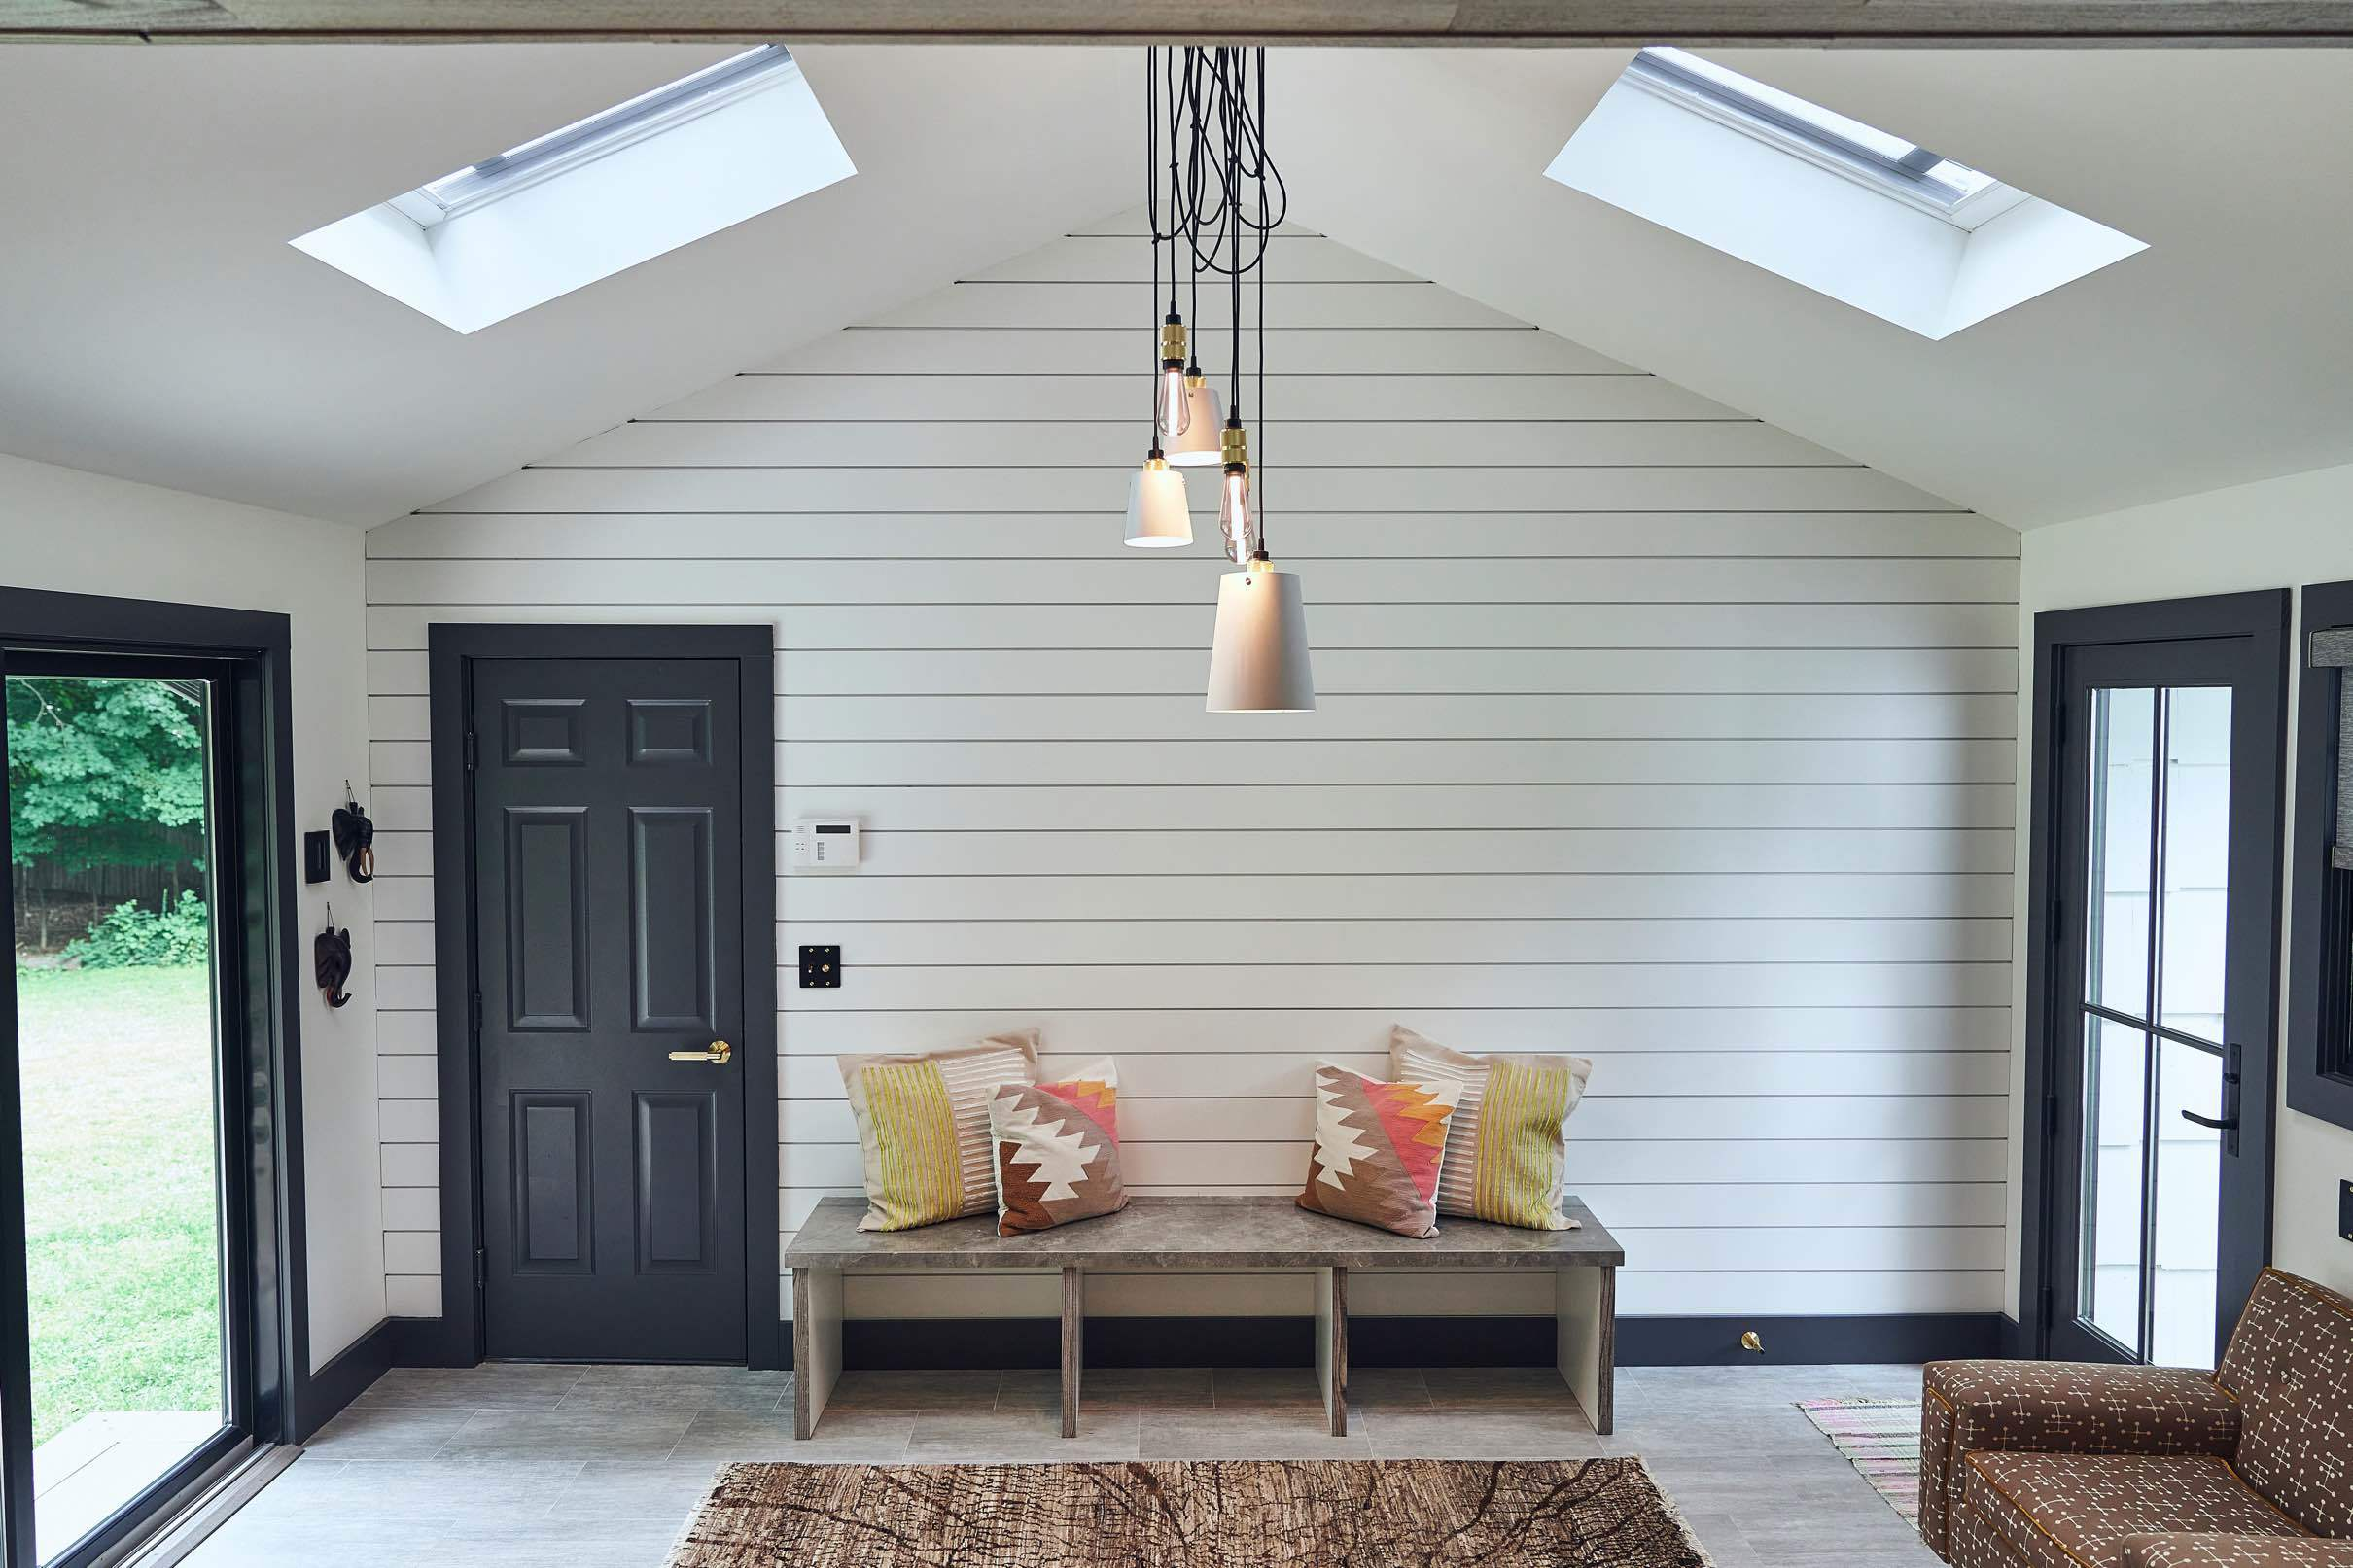 A sunroom with two skylights on either side of the roof ridge, a shiplap wall with a bench centered on it and pillows